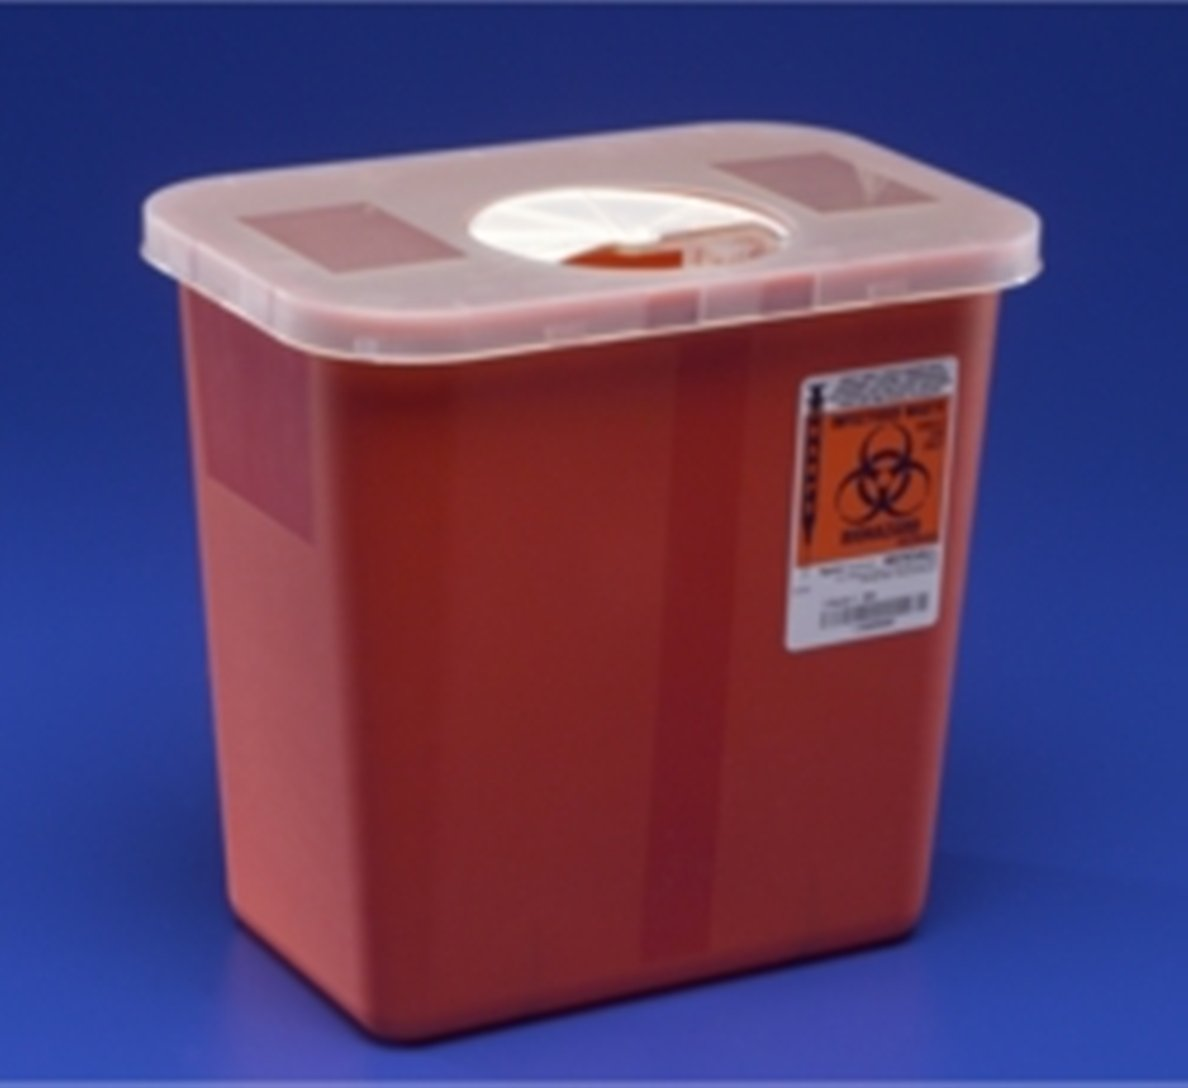 Kendall 8970 Sharps Disposal Biohazard Waste Container with Rotor Lid, 2 Gallon Capacity, 10.5'' Width x 10'' Height x 7.25'' Depth, Red Base (Case of 20)